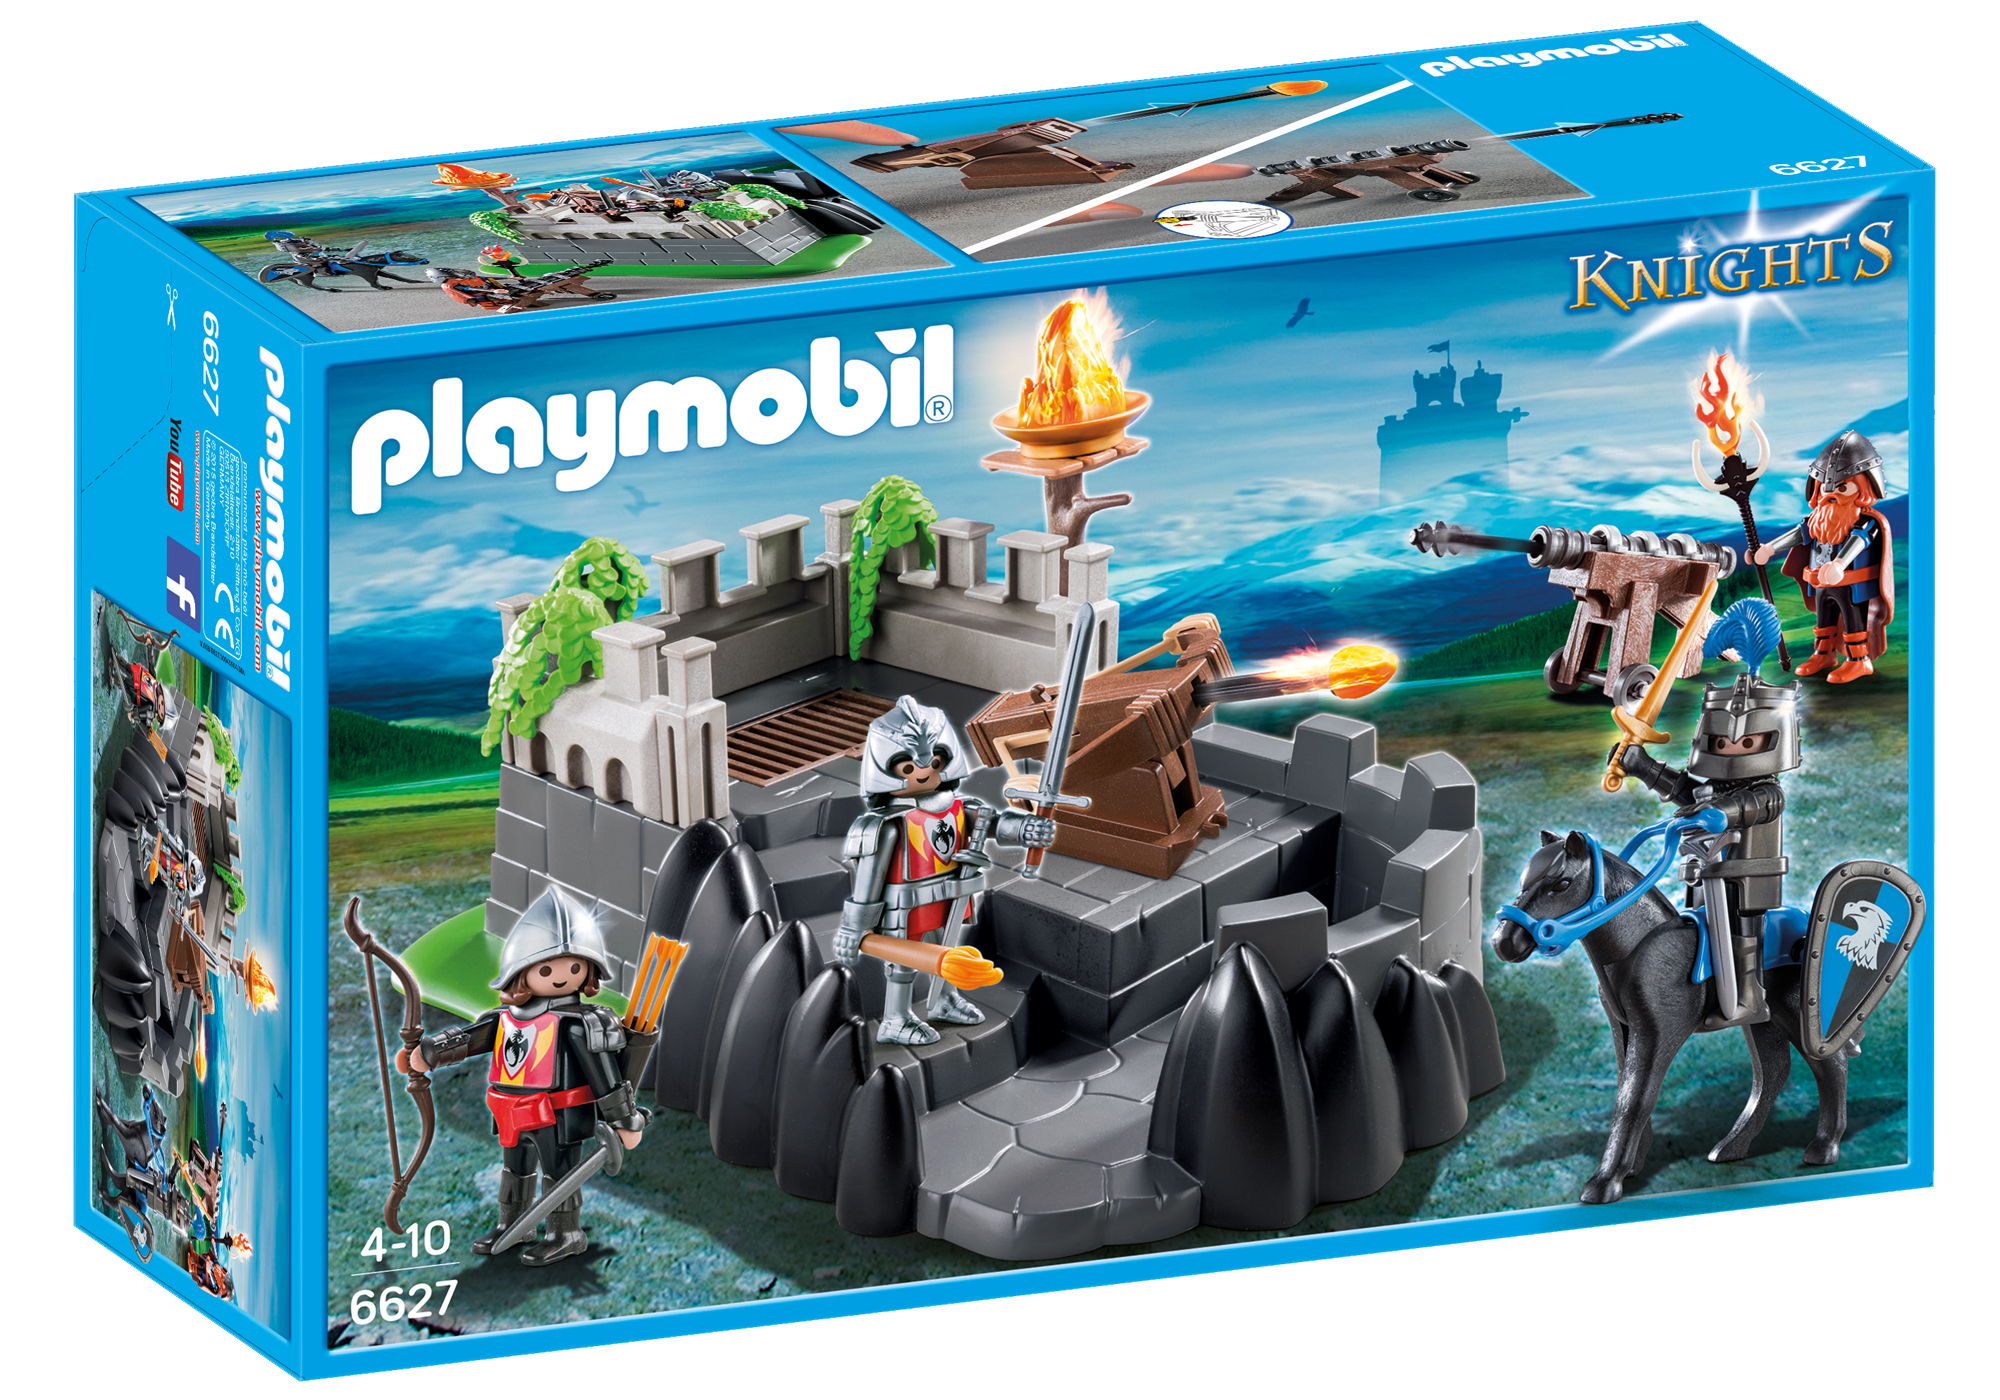 http://media.playmobil.com/i/playmobil/6627_product_box_front/Dragon Knights' Fort